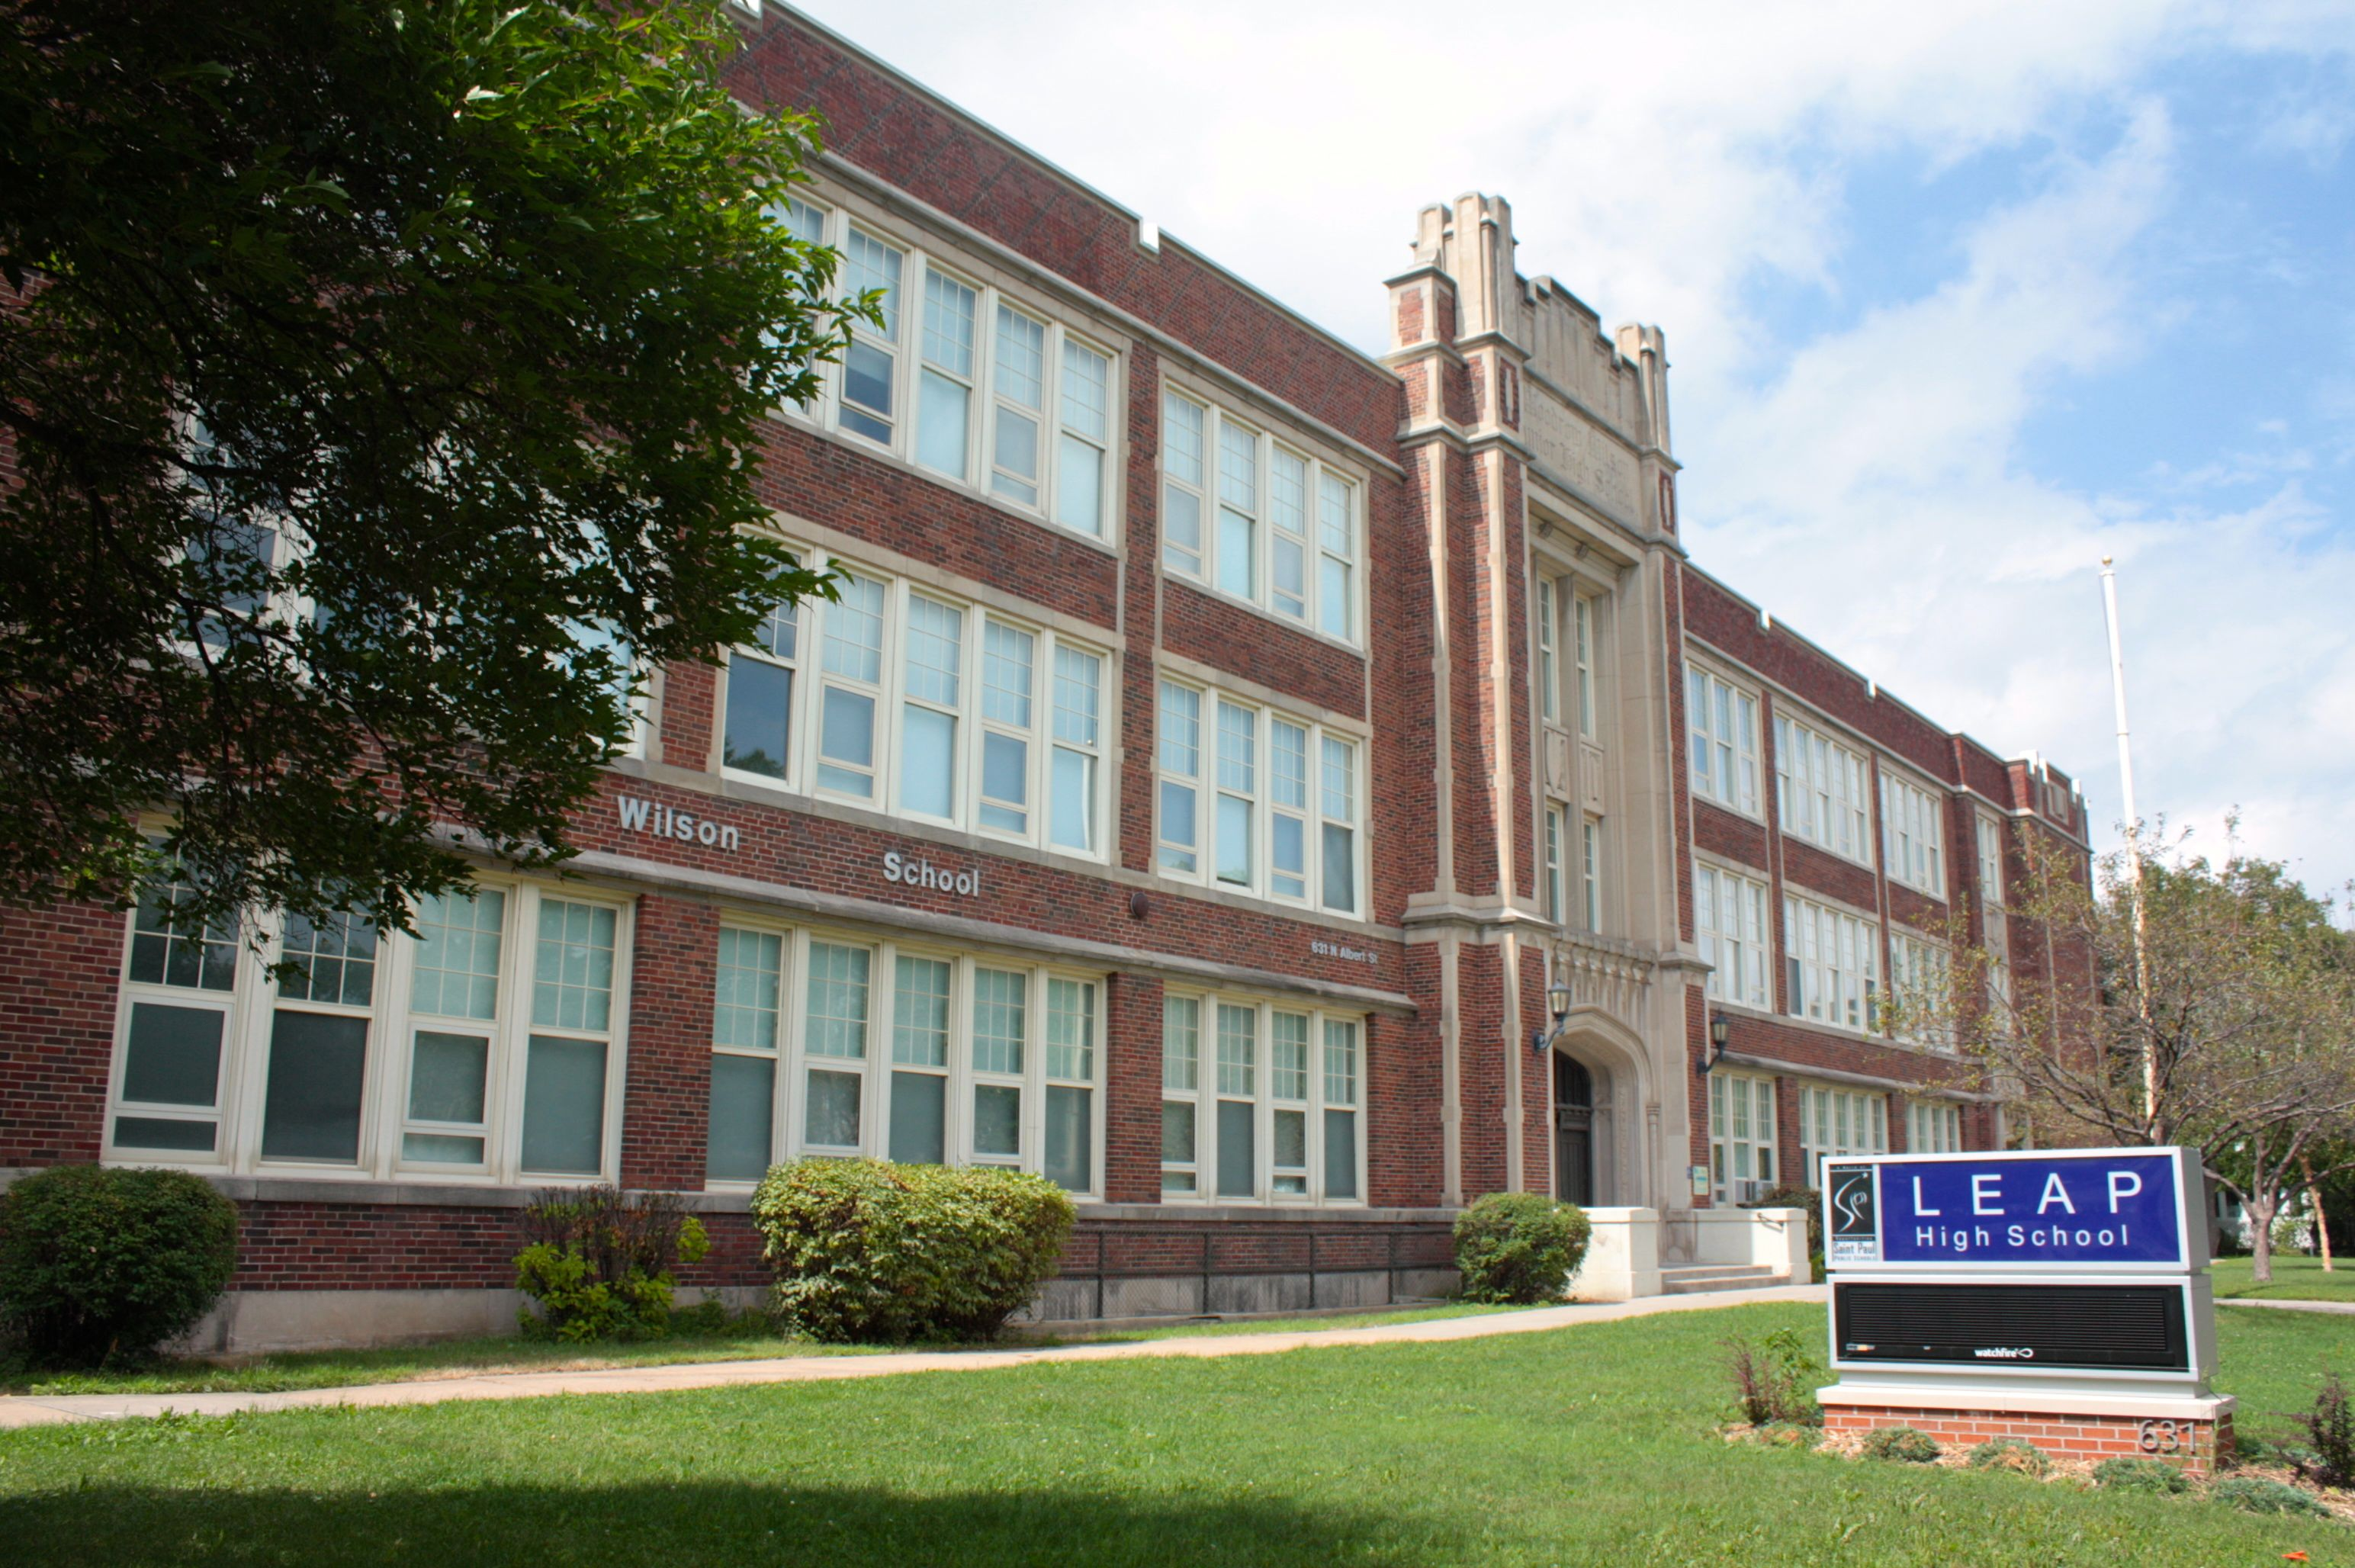 LEAP High School, for non-English speaking students, has been in the Woodrow Wilson School building since 2004. It is at 631 North Albert Street.